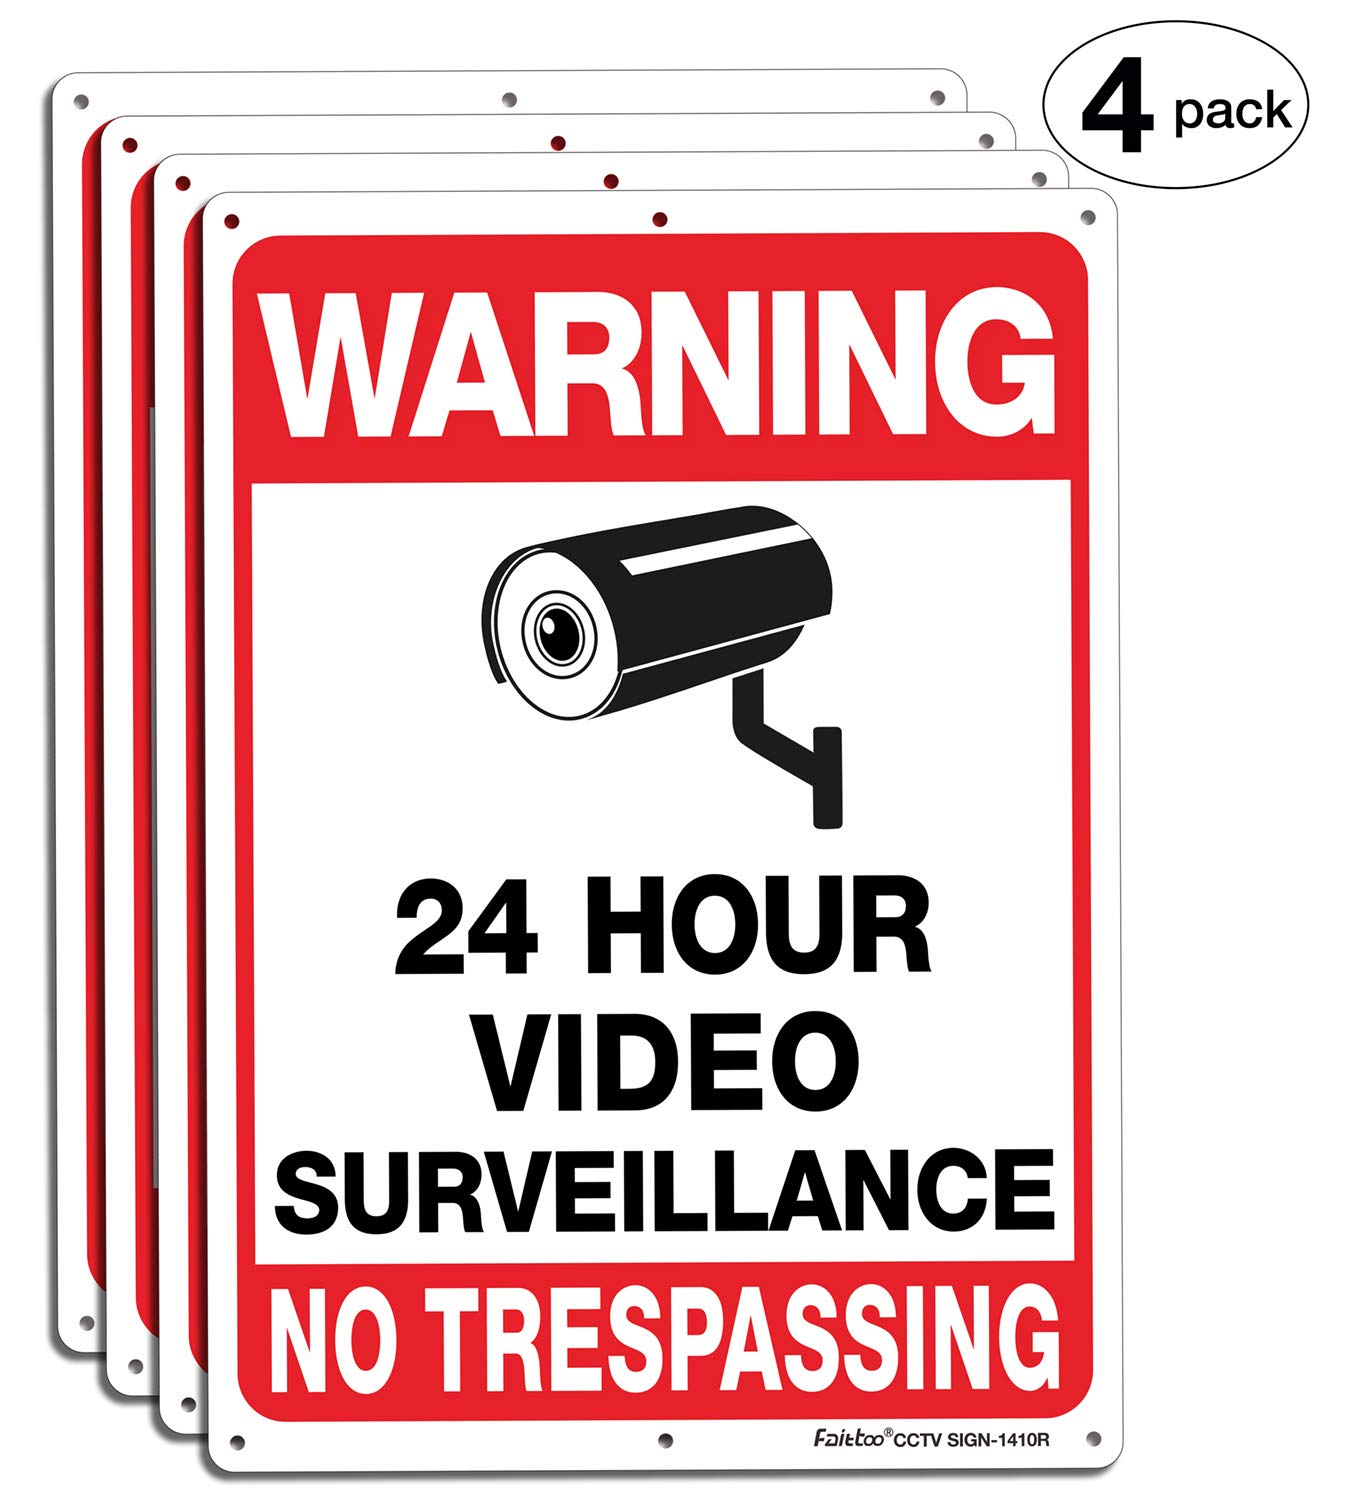 Faittoo 4-Pack Video Surveillance Sign, 14x10 Inches .040 Aluminum No Trespassing Metal Reflective Warning Sign, Indoor or Outdoor Use for Home Business CCTV Security Camera,UV Protected & Waterproof by Faittoo